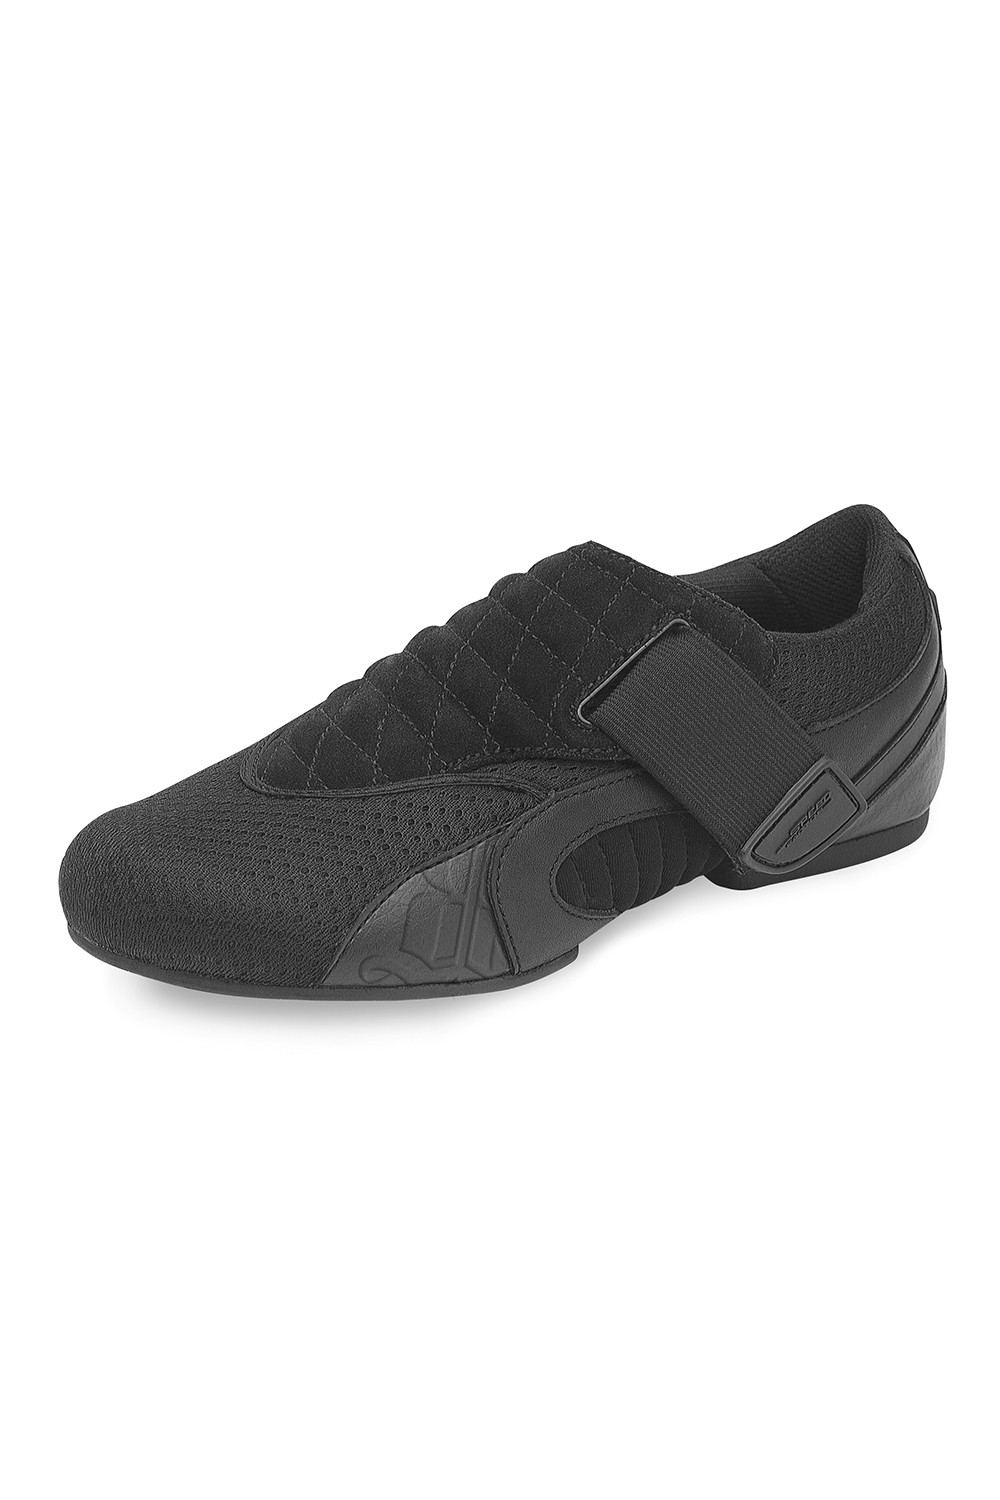 Speed Factor Women's Dance Sneakers